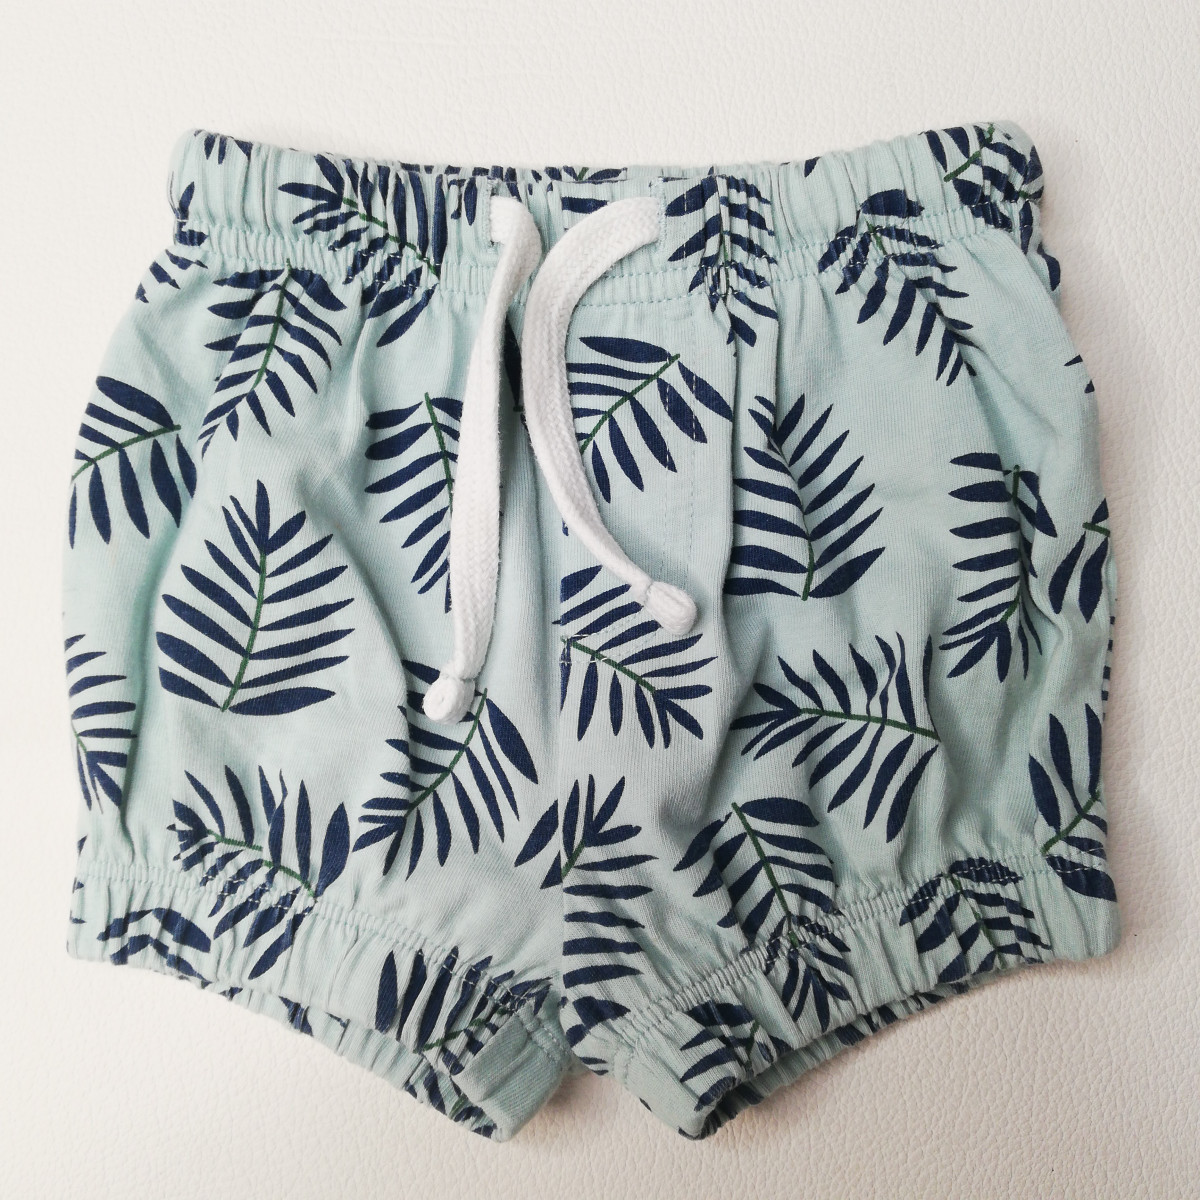 Shorts, Bermudas - photo 11